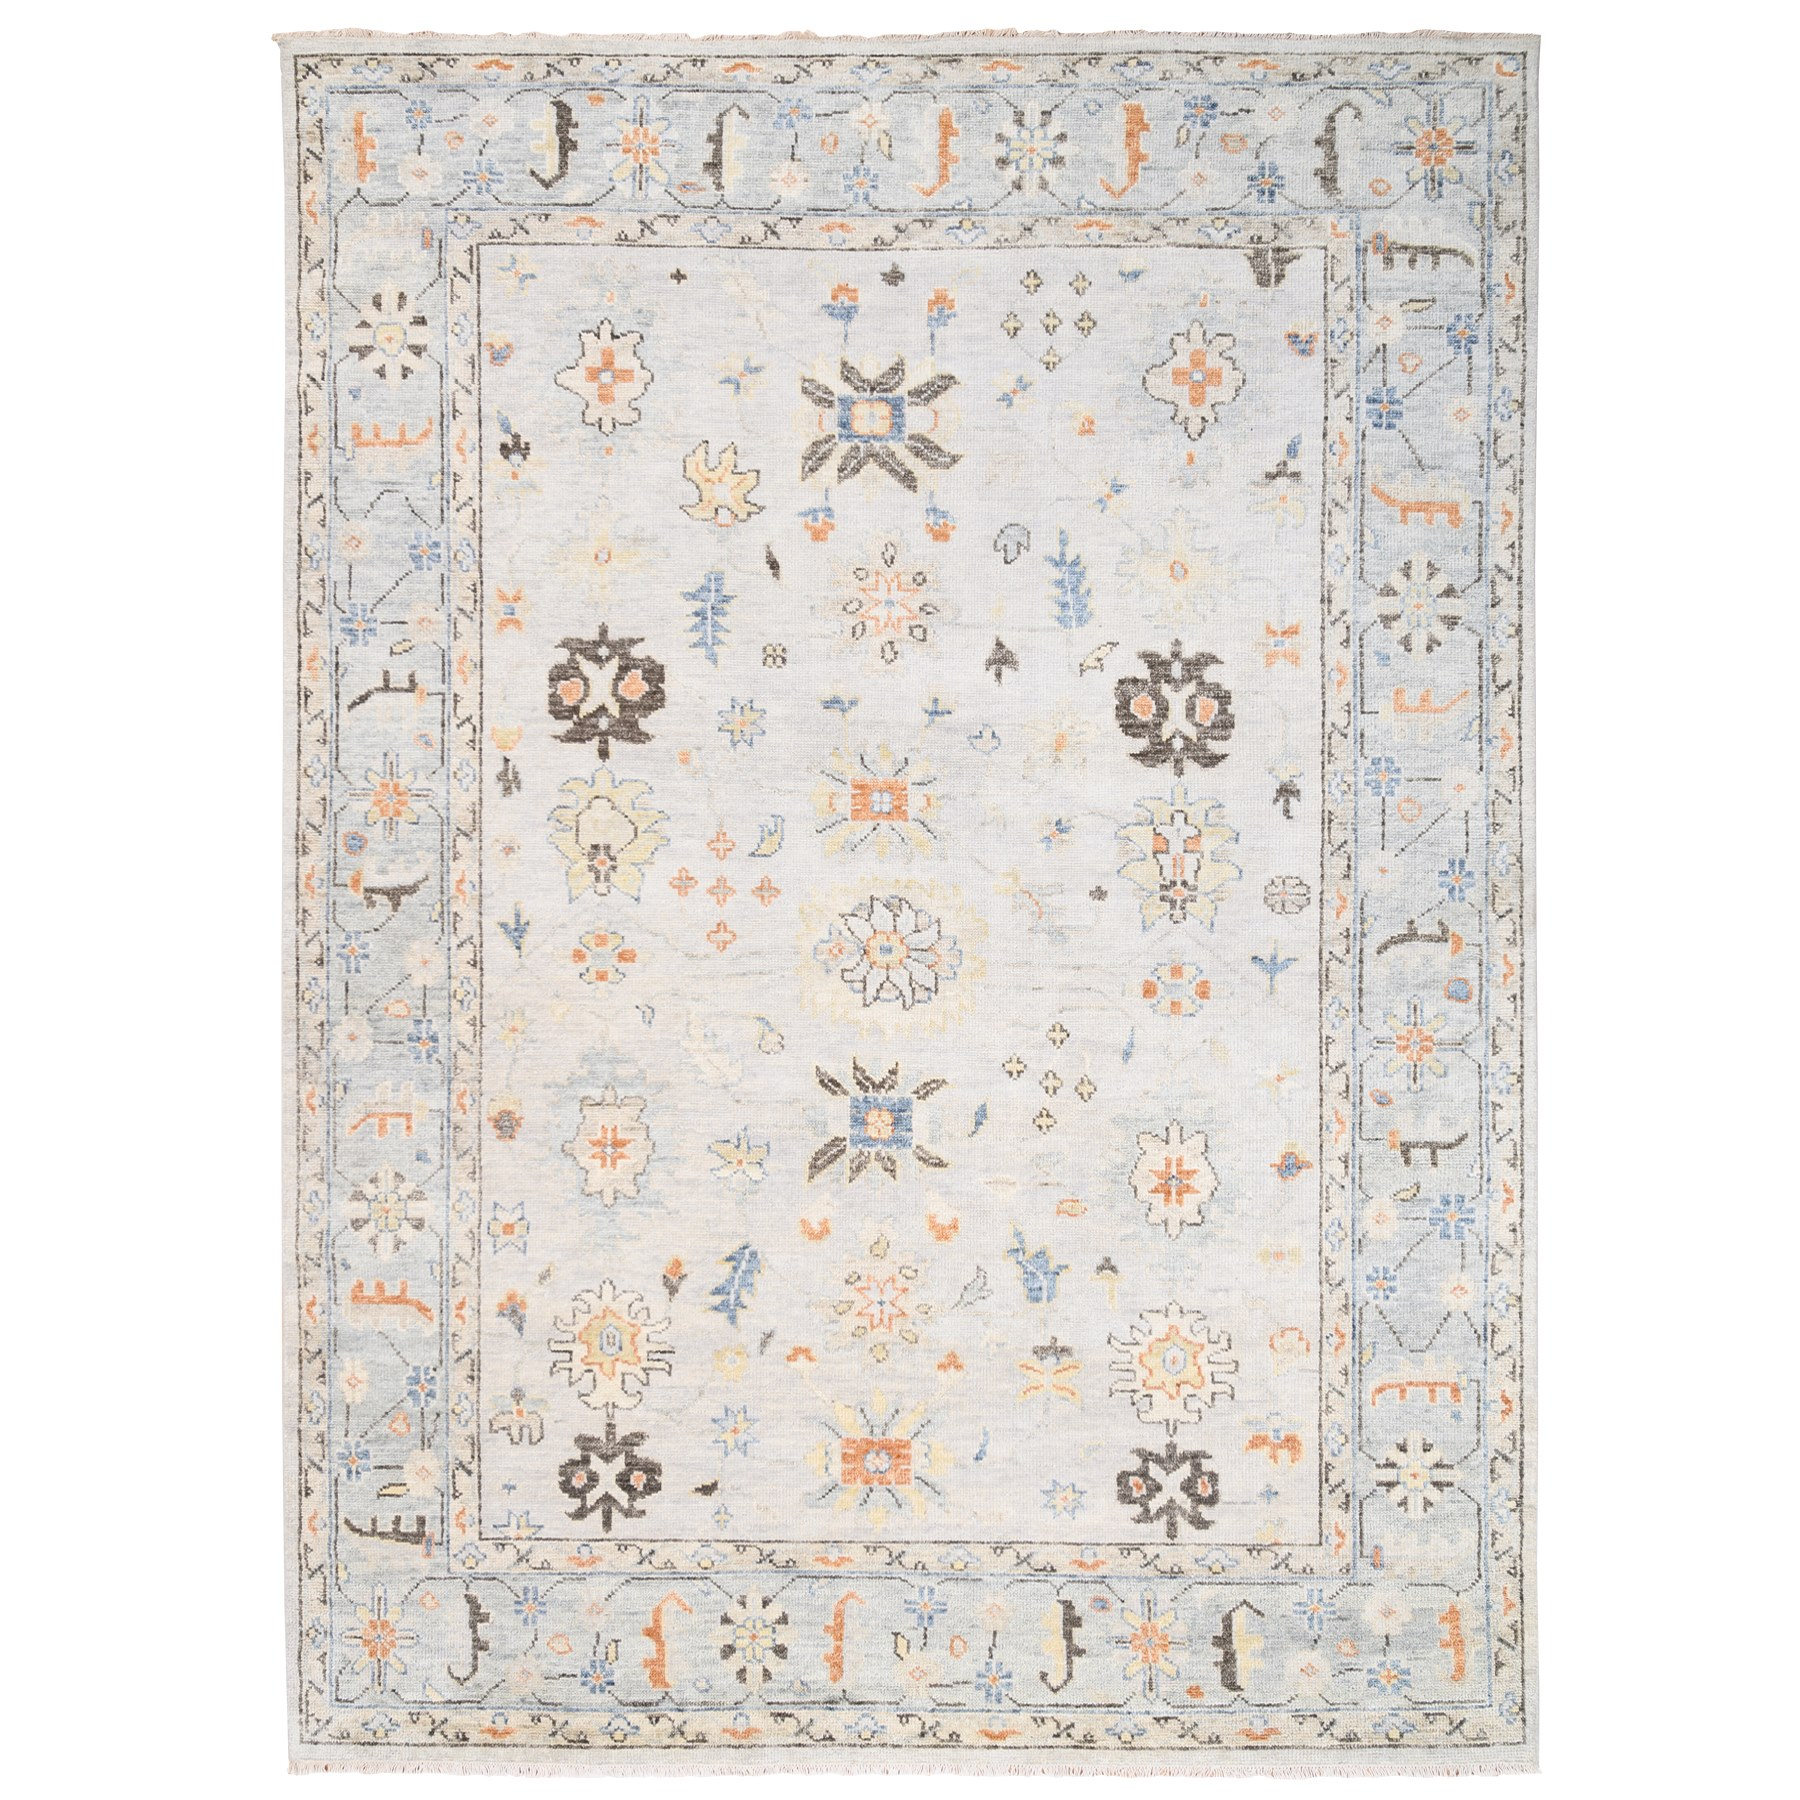 Tribal & Geometric Rugs LUV559701